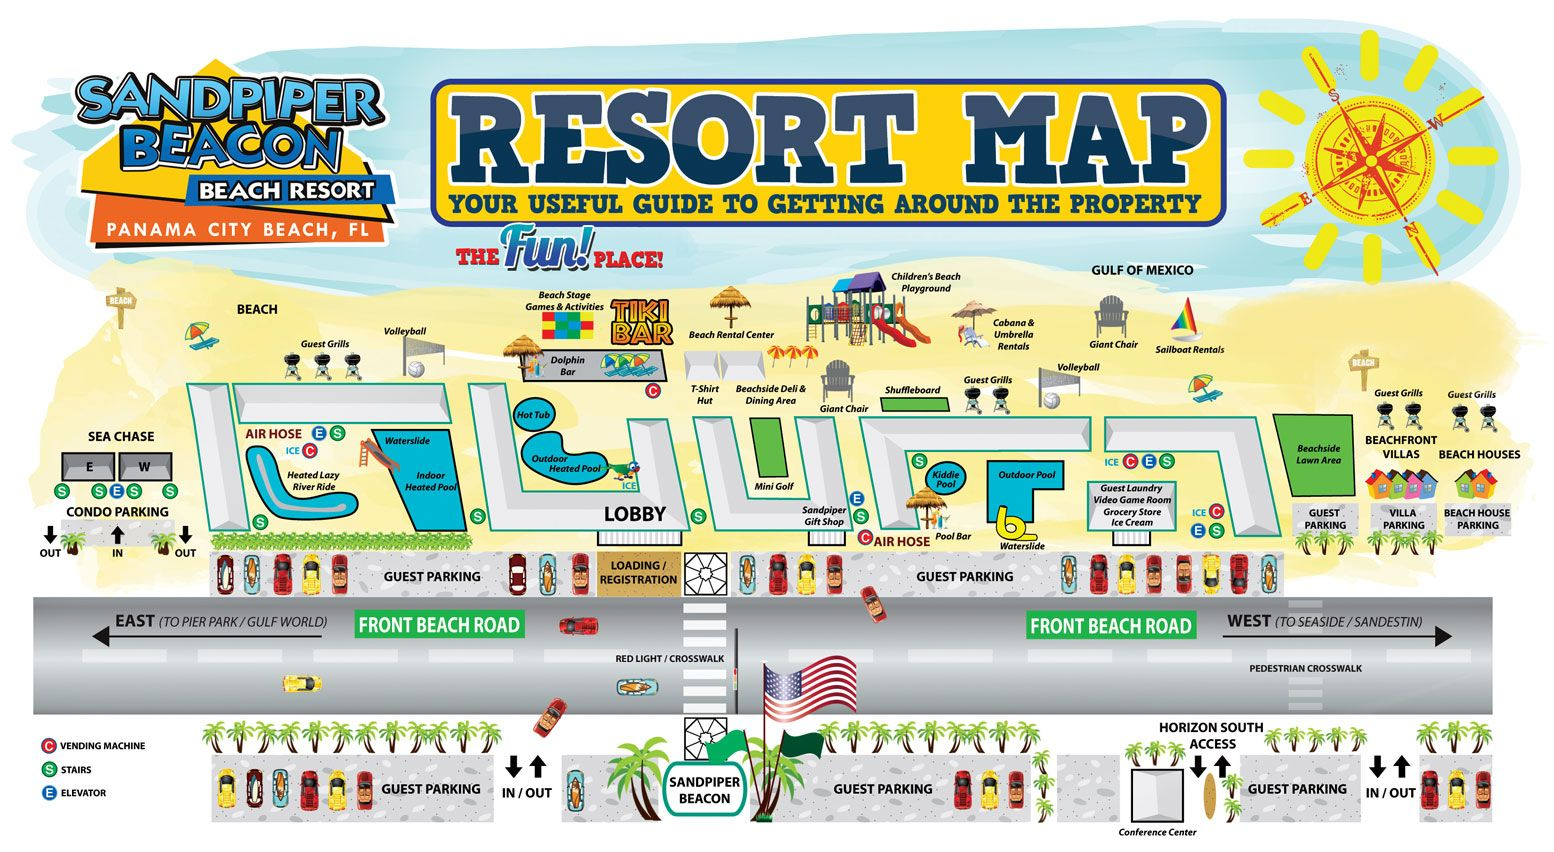 The Resort Map Of The Sandpiper Beacon Beach Resort In Panama City